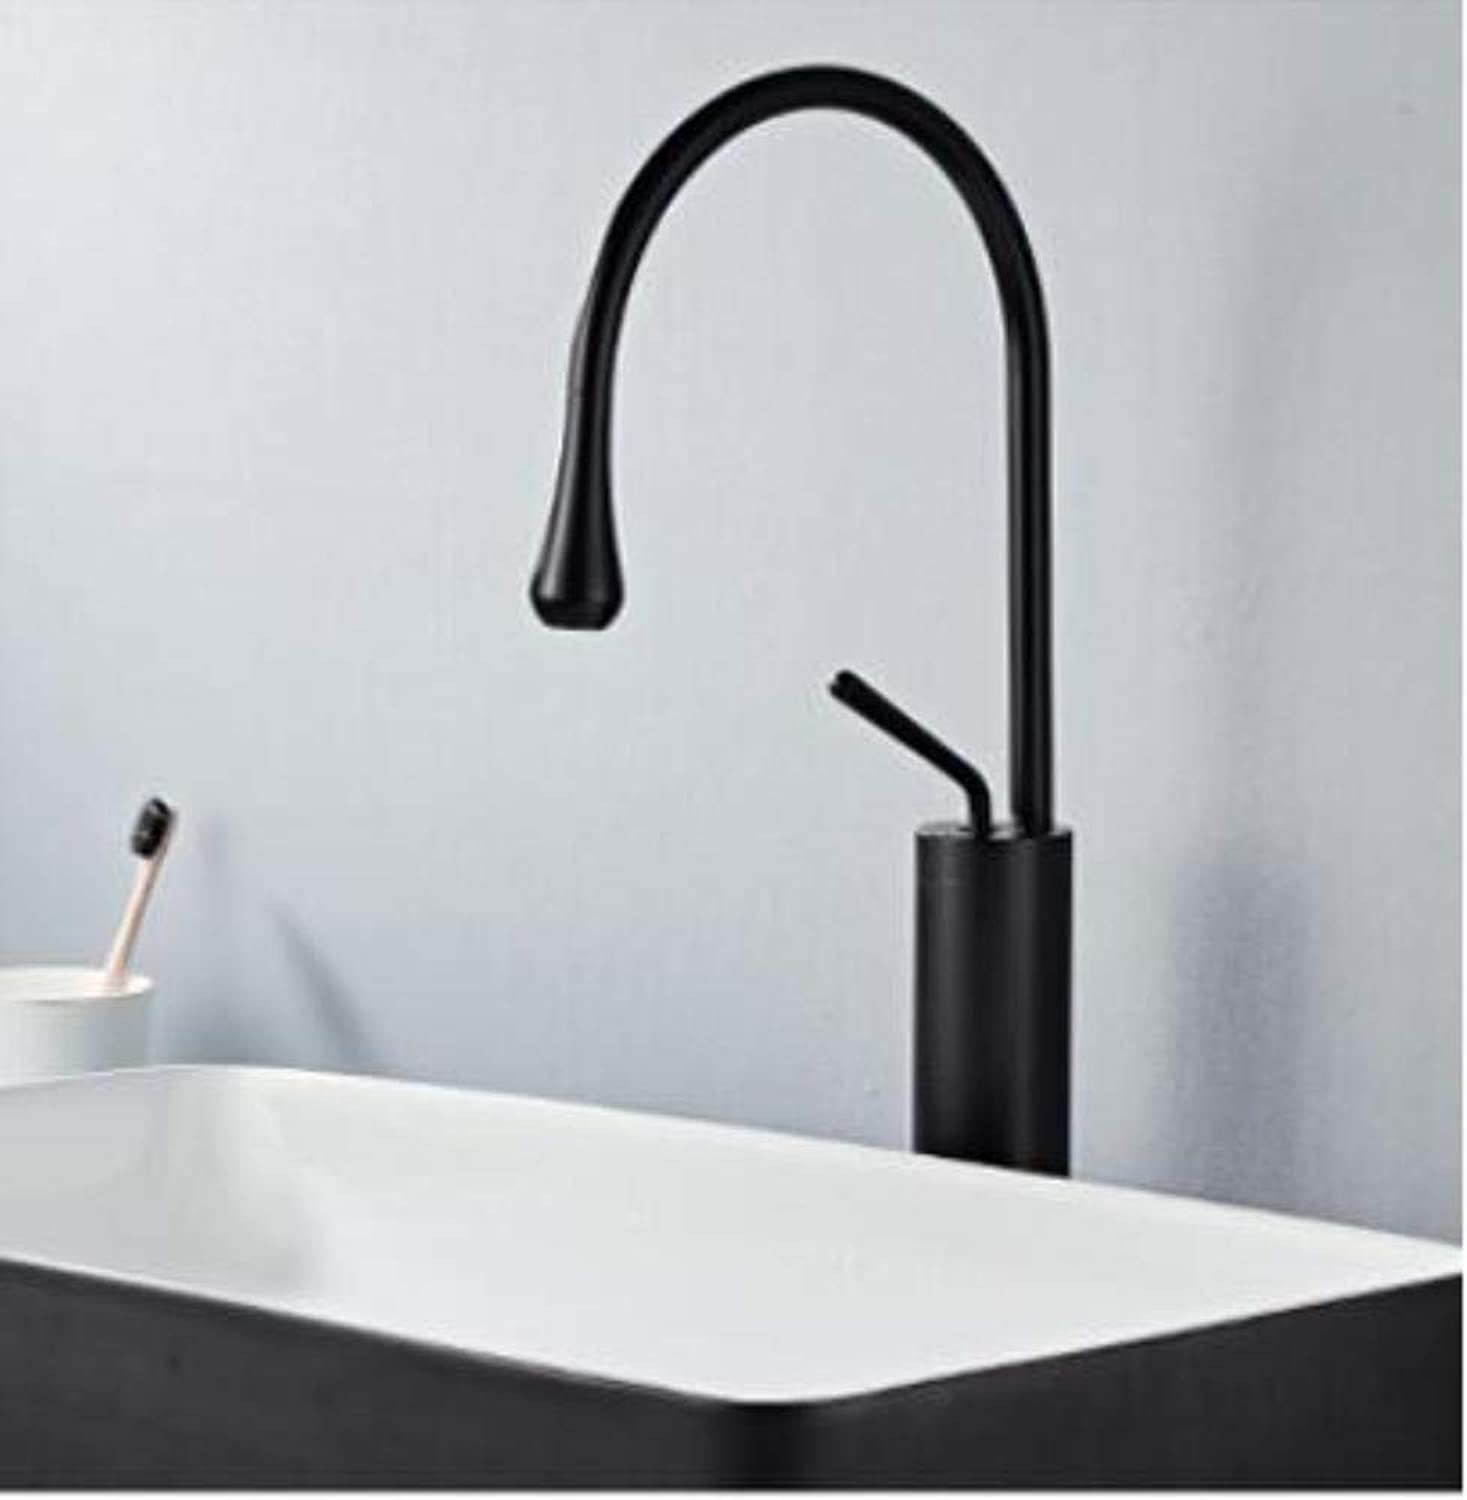 Kai&Guo White or Black Bathroom Basin Faucet Hot and Cold Single Handle Lavatory Mixer Tap Brass Material North Europe Style,black long